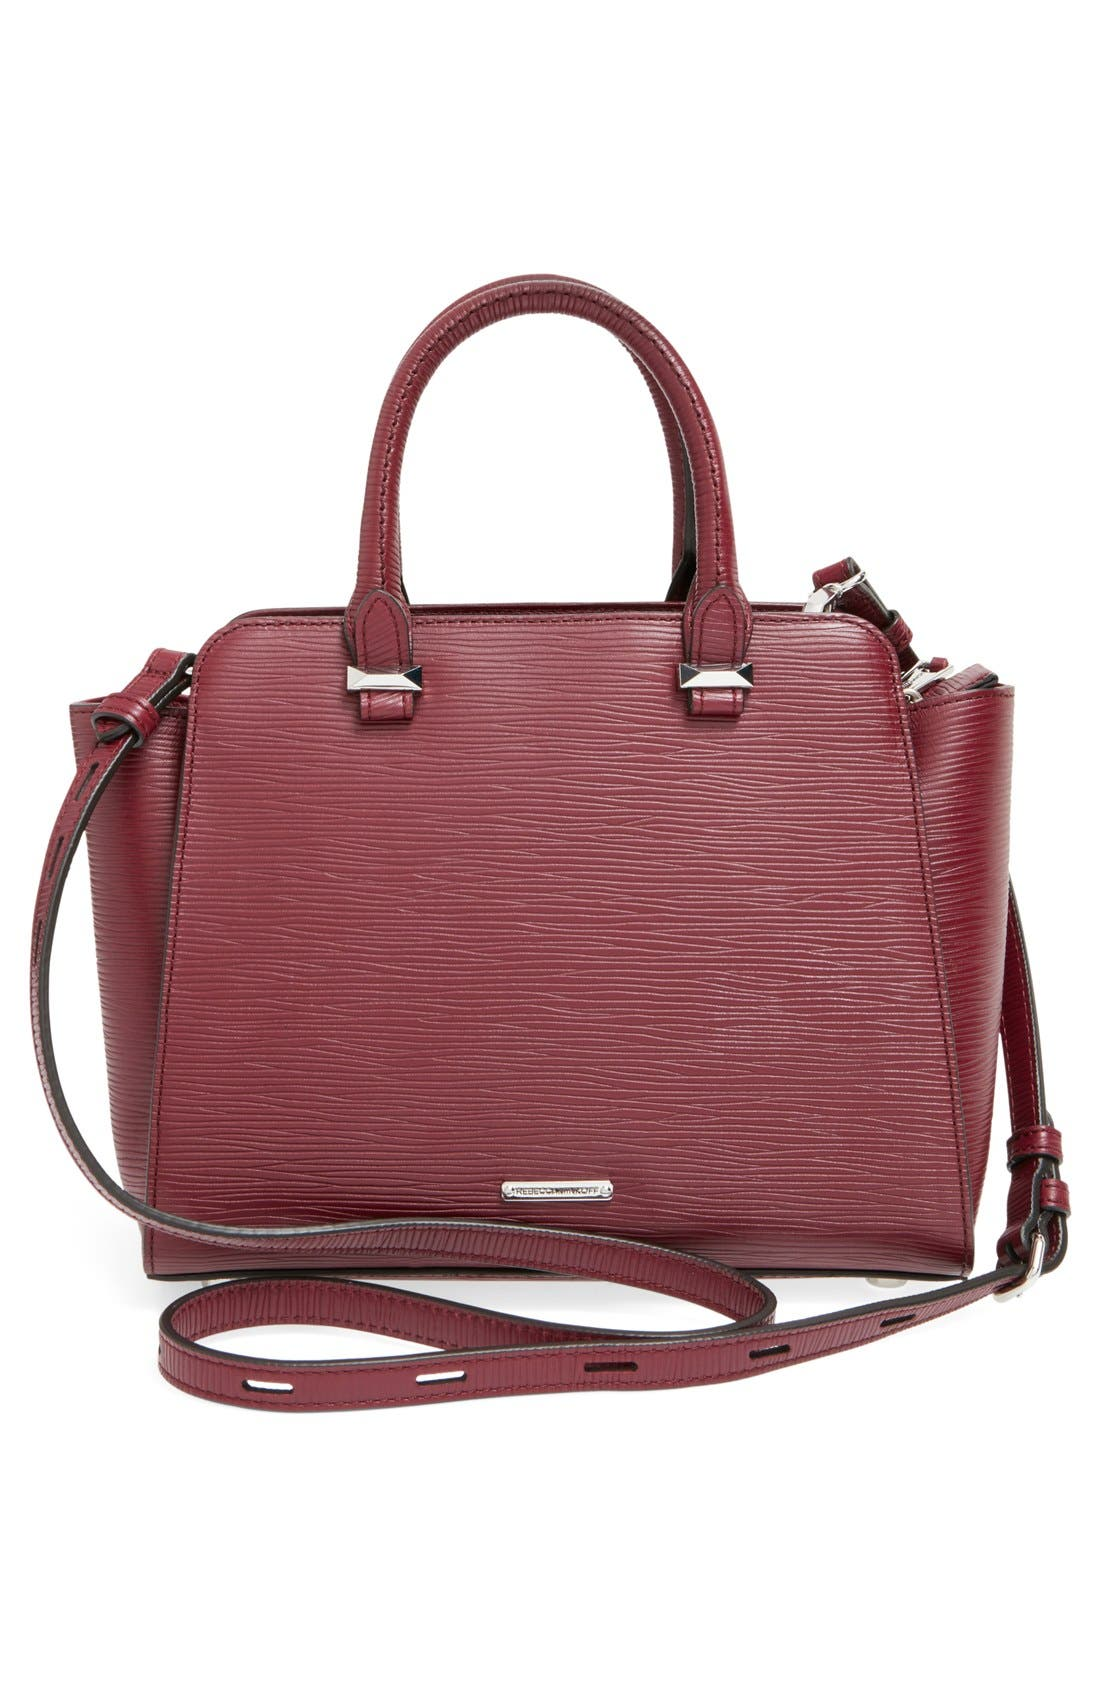 REBECCA MINKOFF,                             'Mini Avery' Tote,                             Alternate thumbnail 5, color,                             930